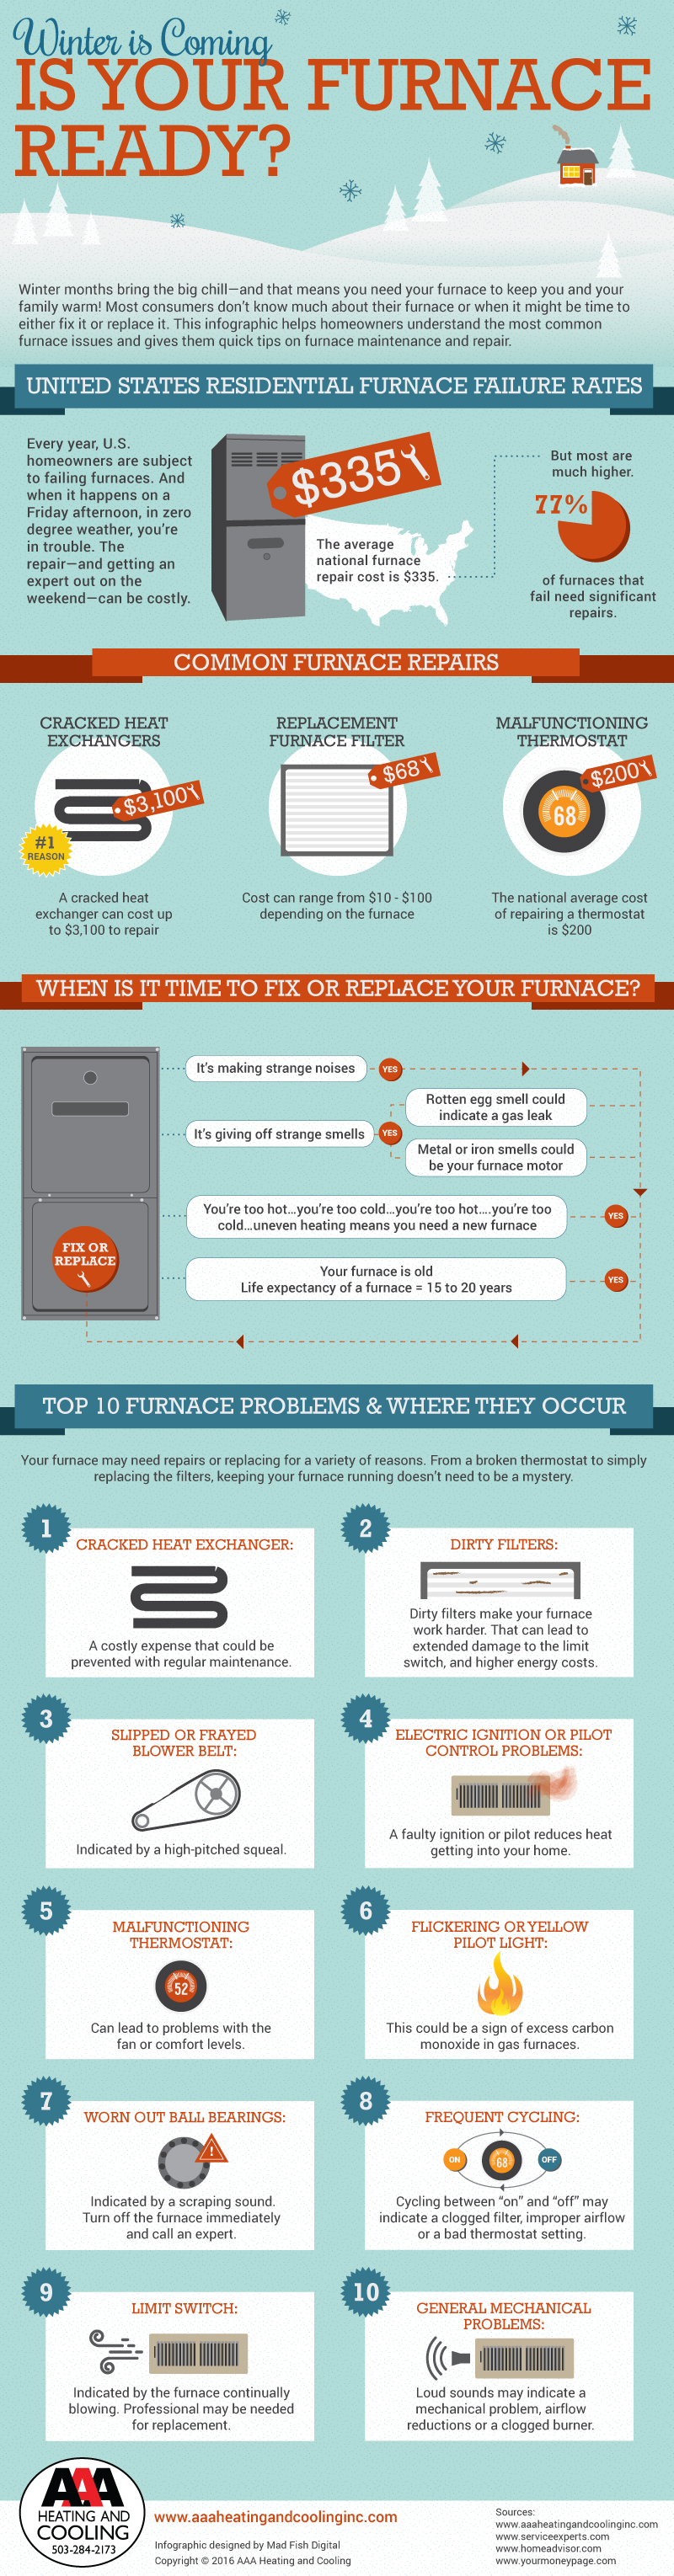 Winter Is Coming - Is Your Furnace Ready?